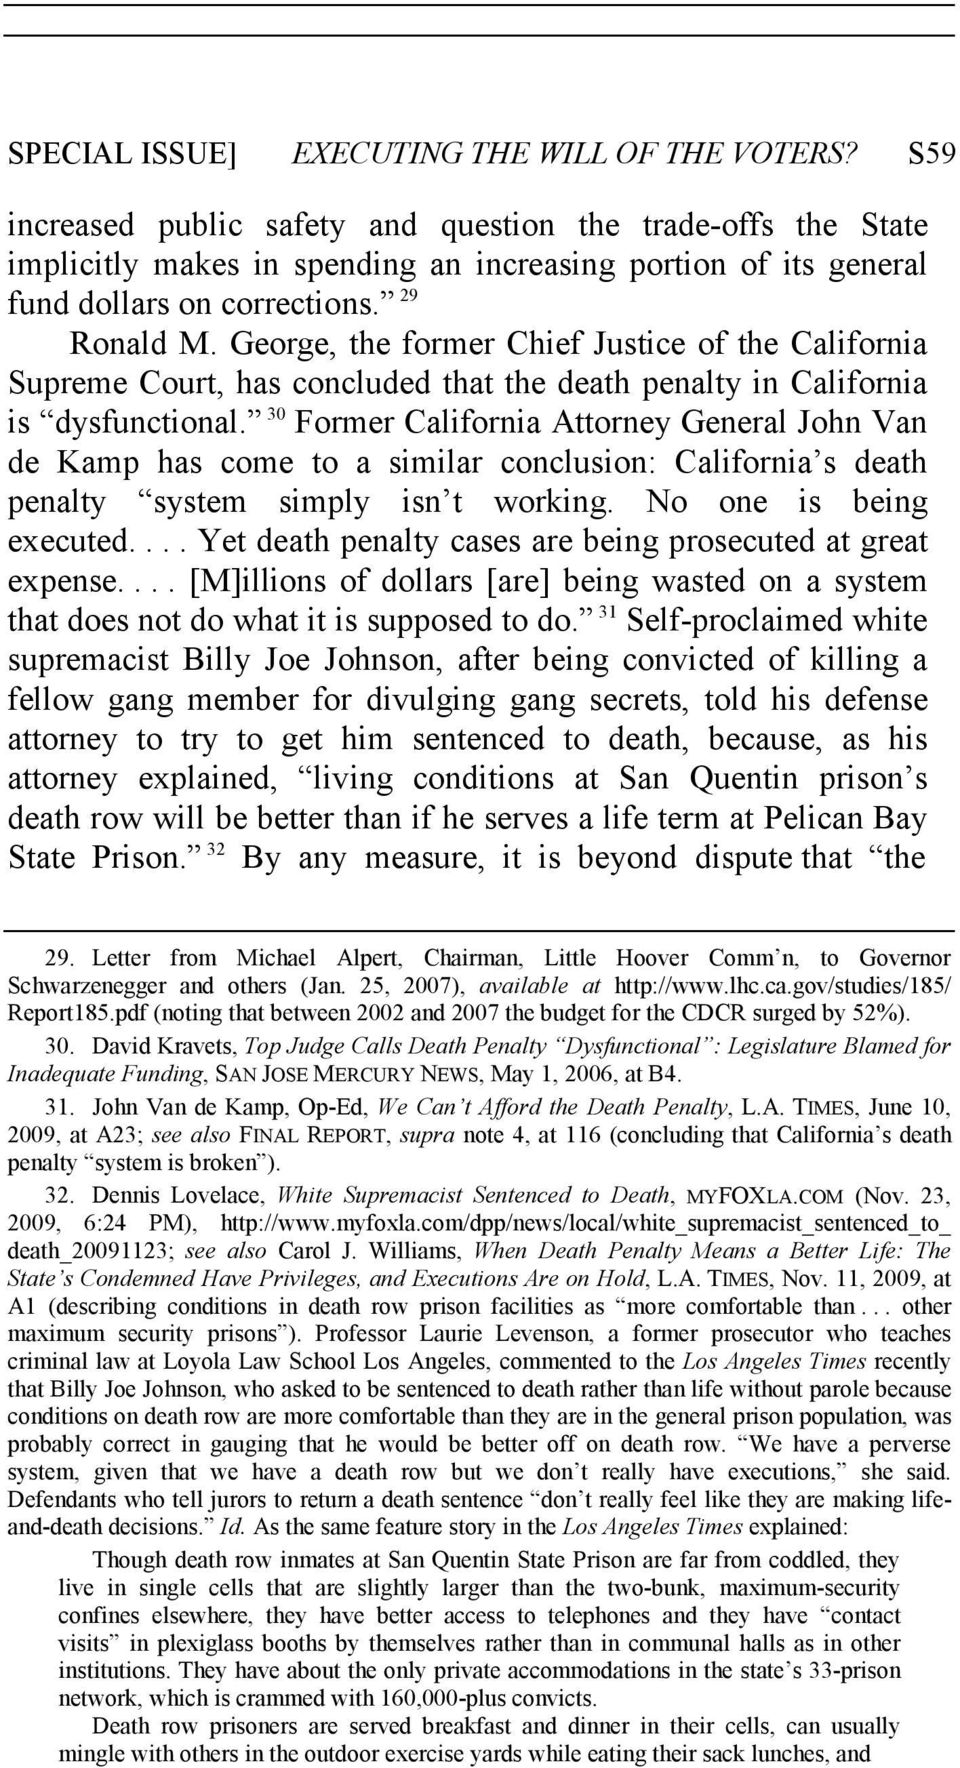 George, the former Chief Justice of the California Supreme Court, has concluded that the death penalty in California is dysfunctional.